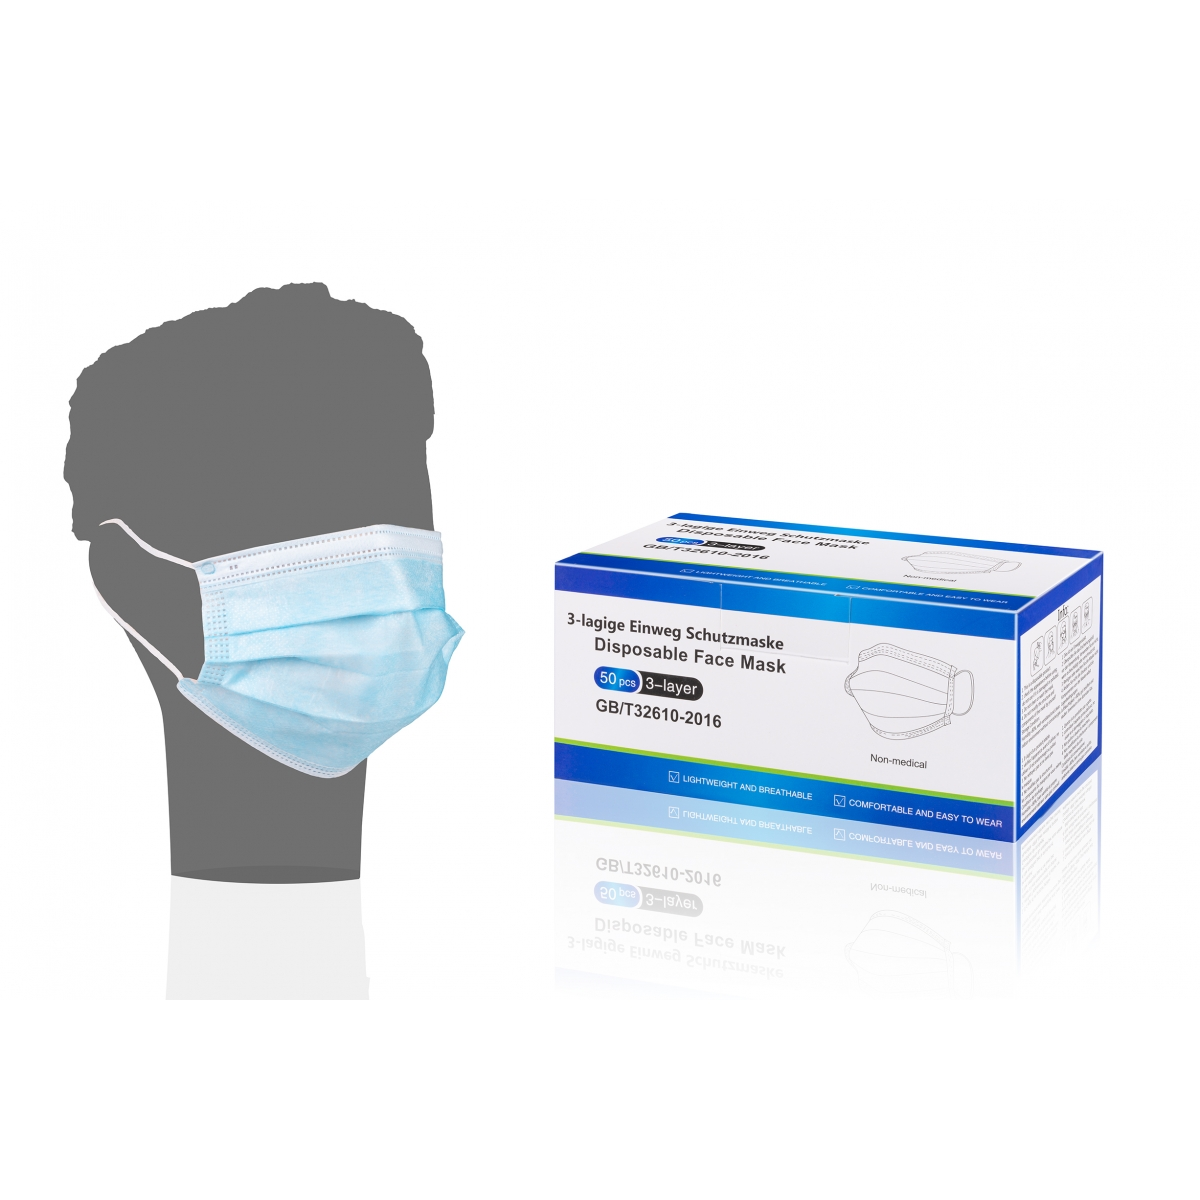 CONSOMMABLES - LCH - MASQUE CHIRURGICAL DE PROTECTION VISITEUR (x50)